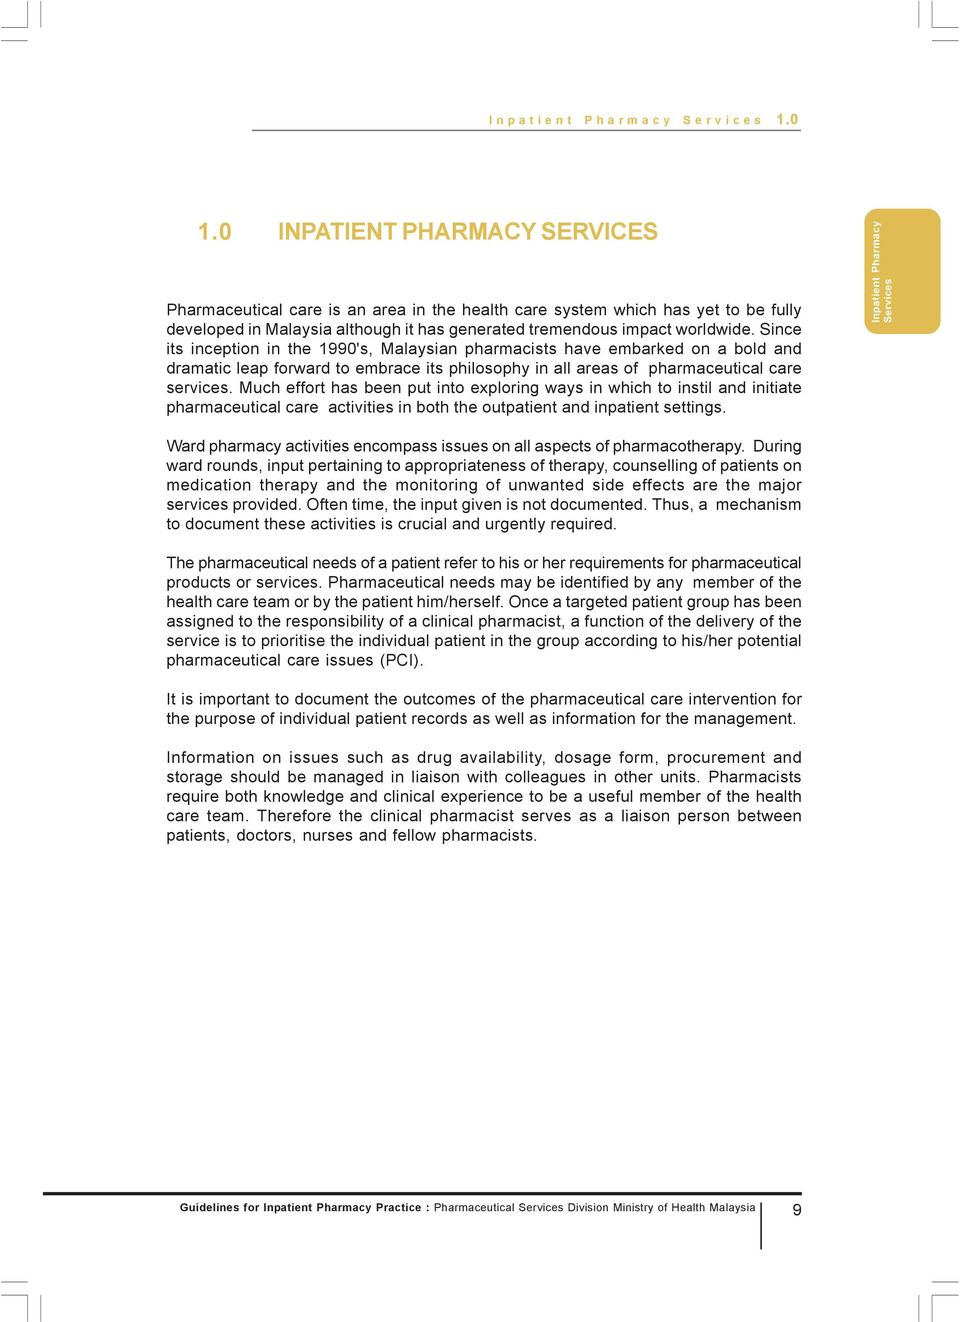 Since its inception in the 1990's, Malaysian pharmacists have embarked on a bold and dramatic leap forward to embrace its philosophy in all areas of pharmaceutical care services.